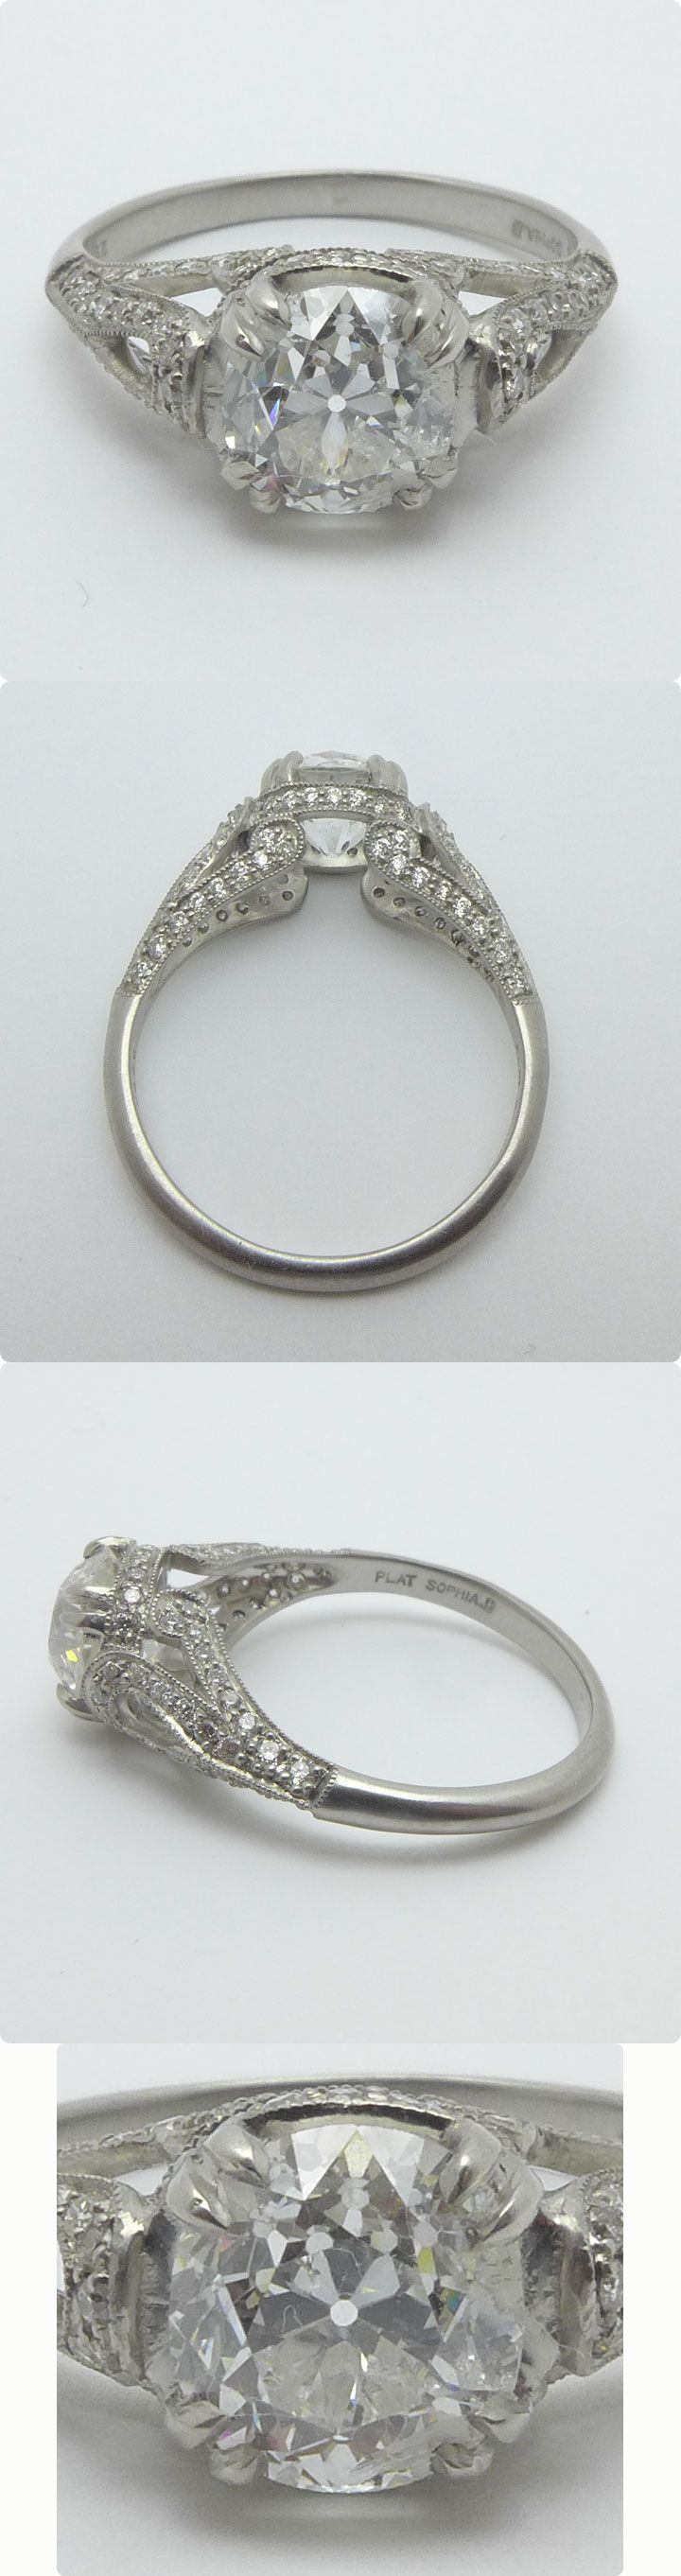 You just don't see engagement rings this gorgeous anymore!!  #Antique Platinum Old European Cut Diamond engagement ring with elegant filigree details in an Art-Deco design!  #Breathtaking !!